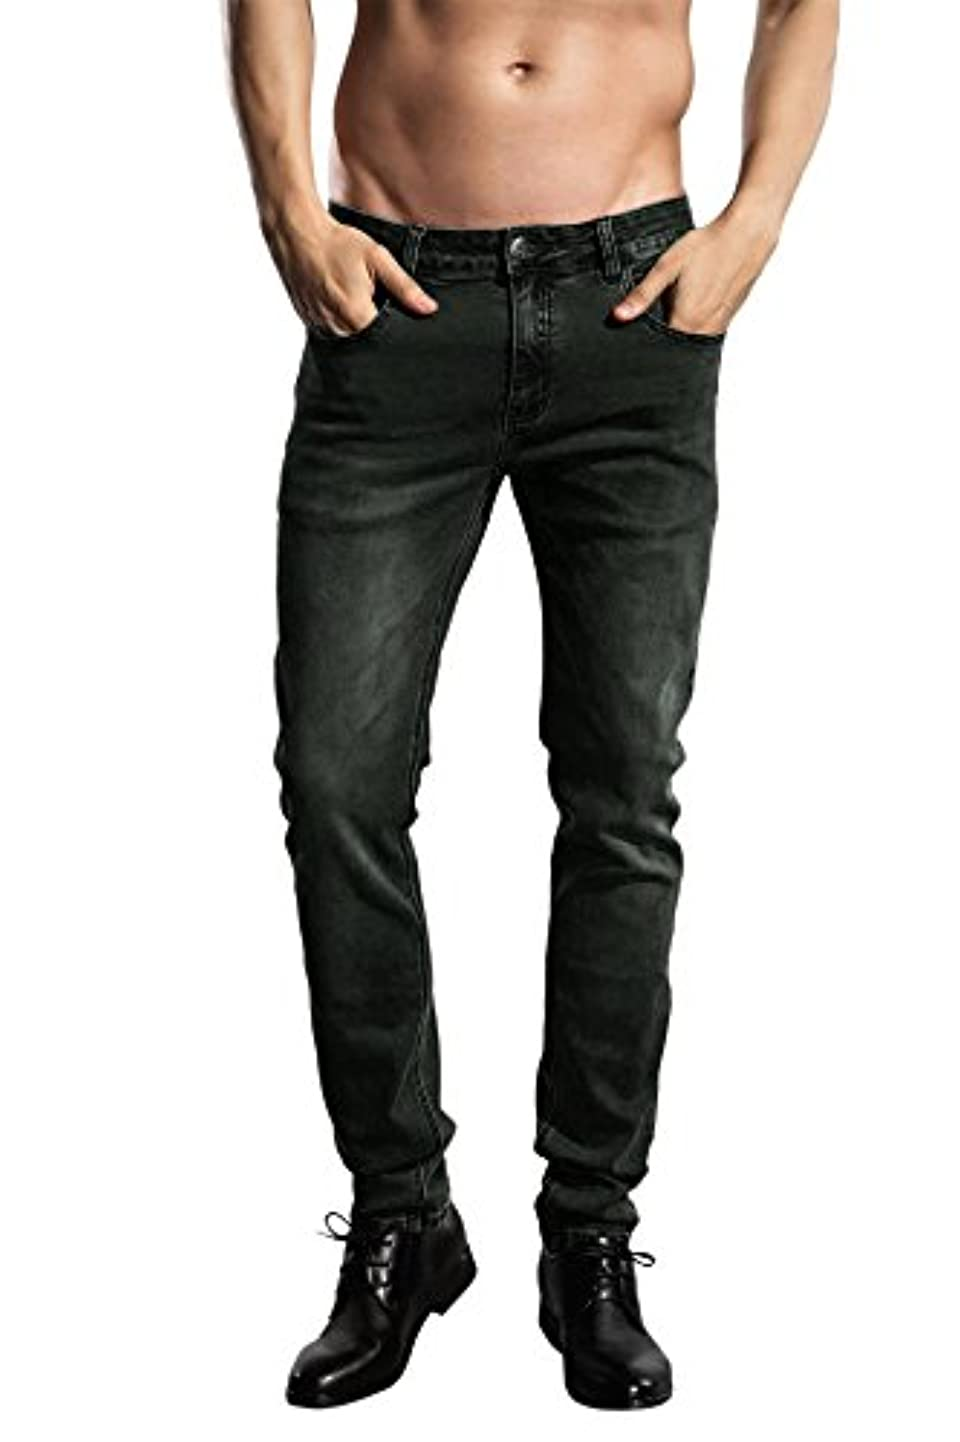 ZLZ Slim Fit Jeans, Men's Younger-Looking Fashionable Colorful Super Comfy Stretch Skinny Fit Denim Jeans gmspfajhypf5